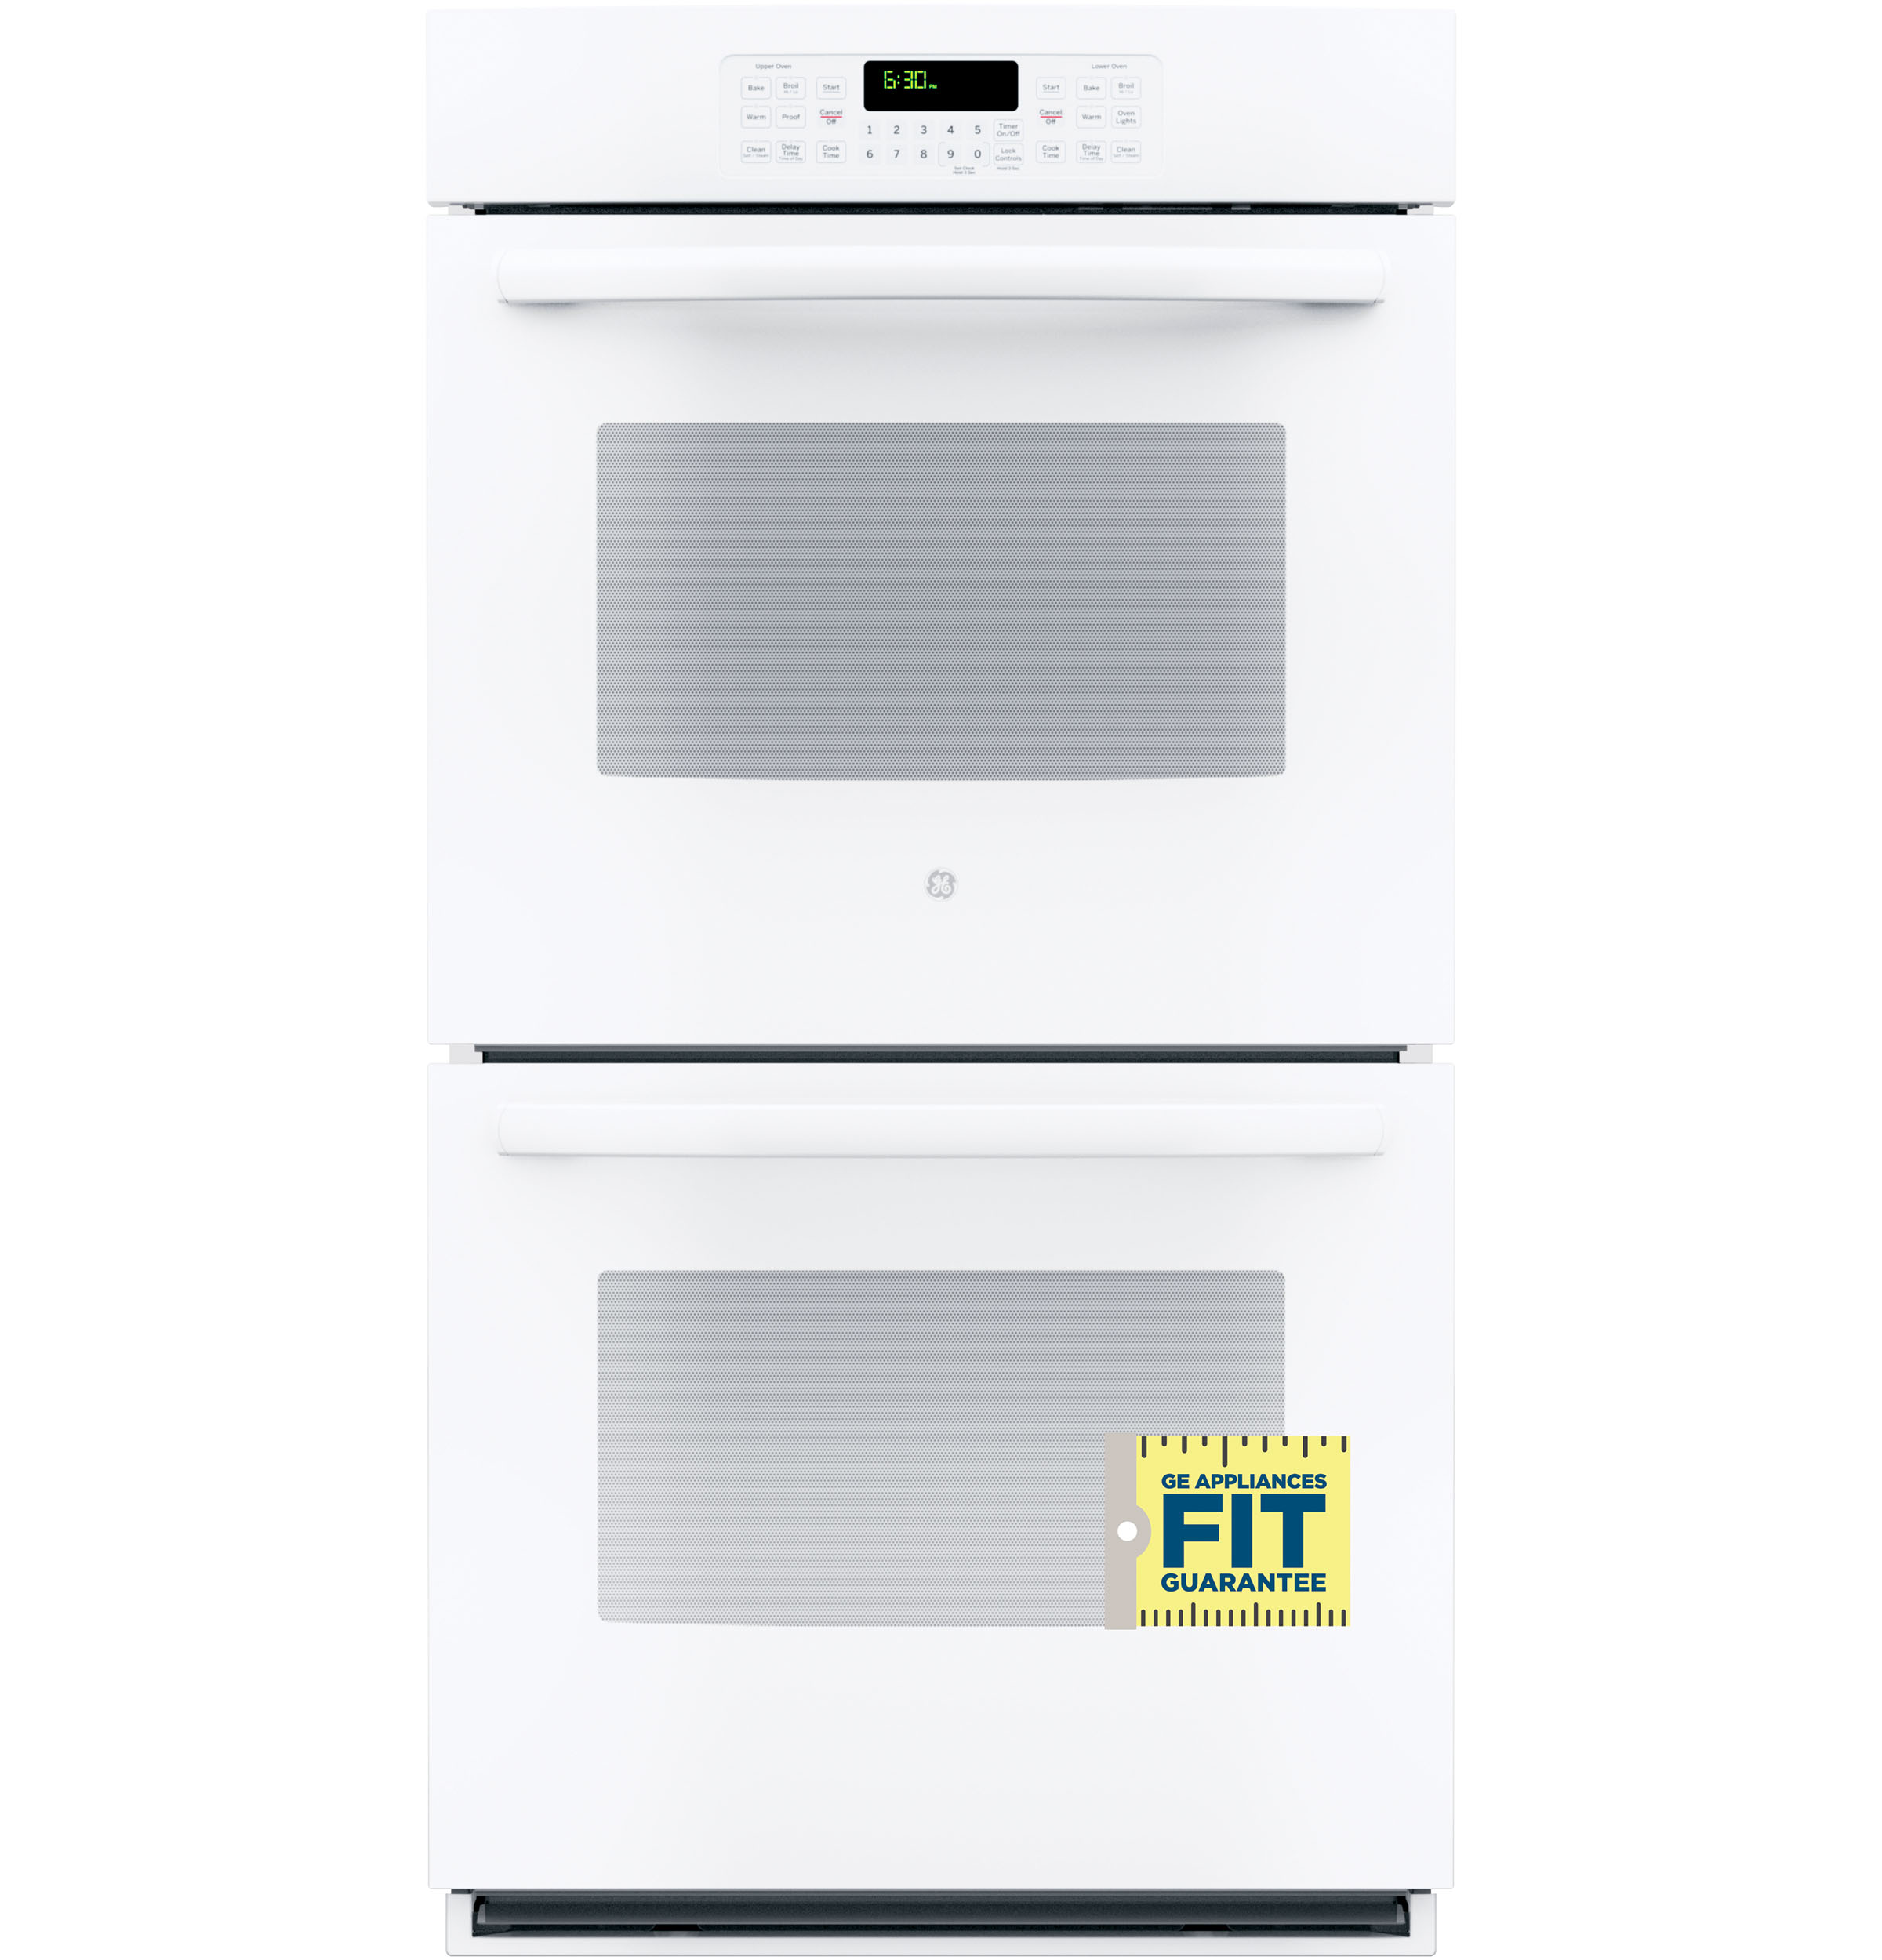 Whirlpool white ice double wall oven - Product Image Product Image Product Image Product Image